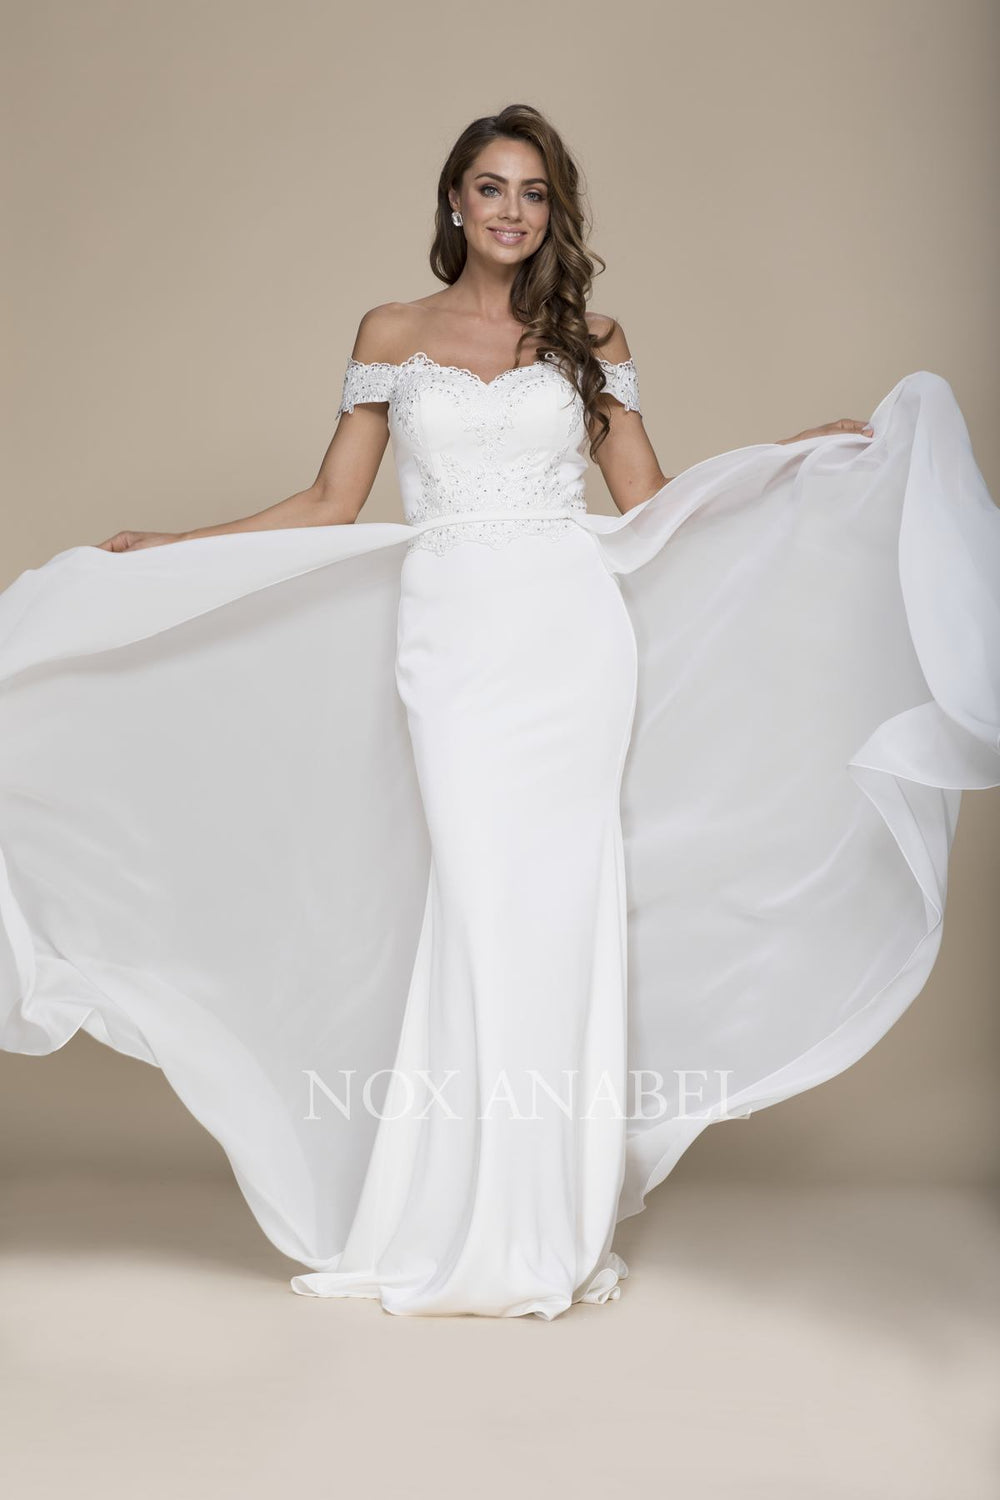 LONG ELEGANT OFF SHOULDER BEADED BODICE DRESS WITH CHIFFON DETACHABLE OVERLAY E014 BY NARIANNA